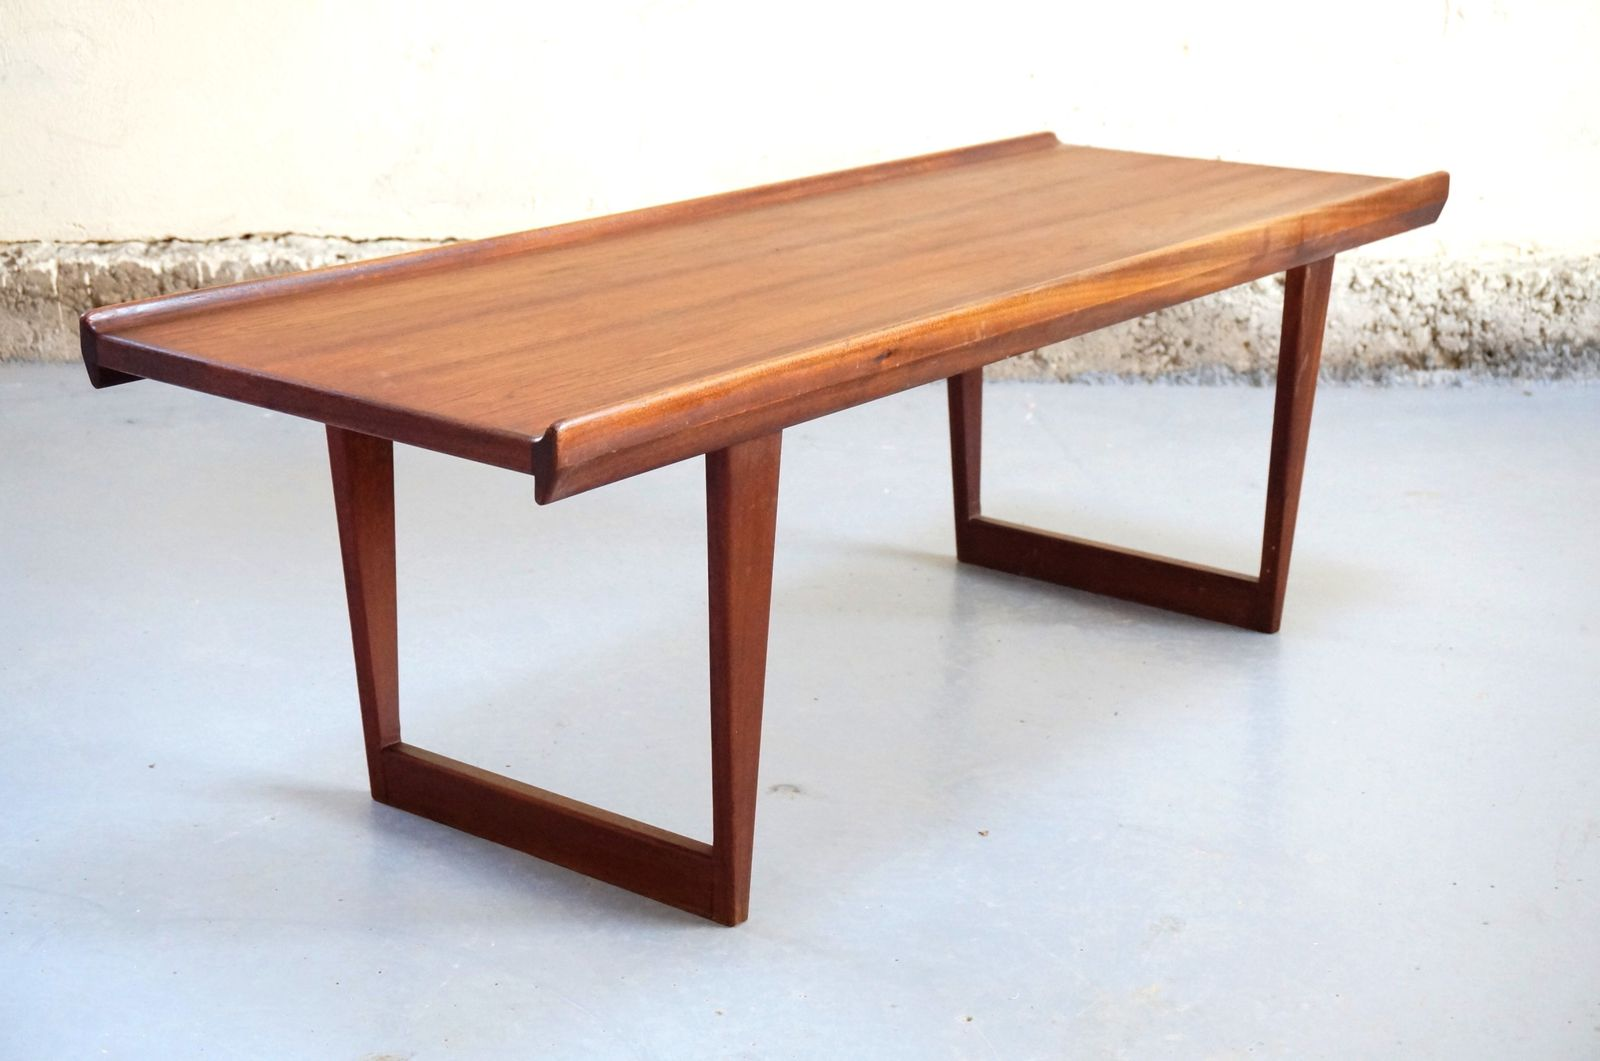 Vendu table basse scandinave de salon ann es 50 60 teck for 60s table design